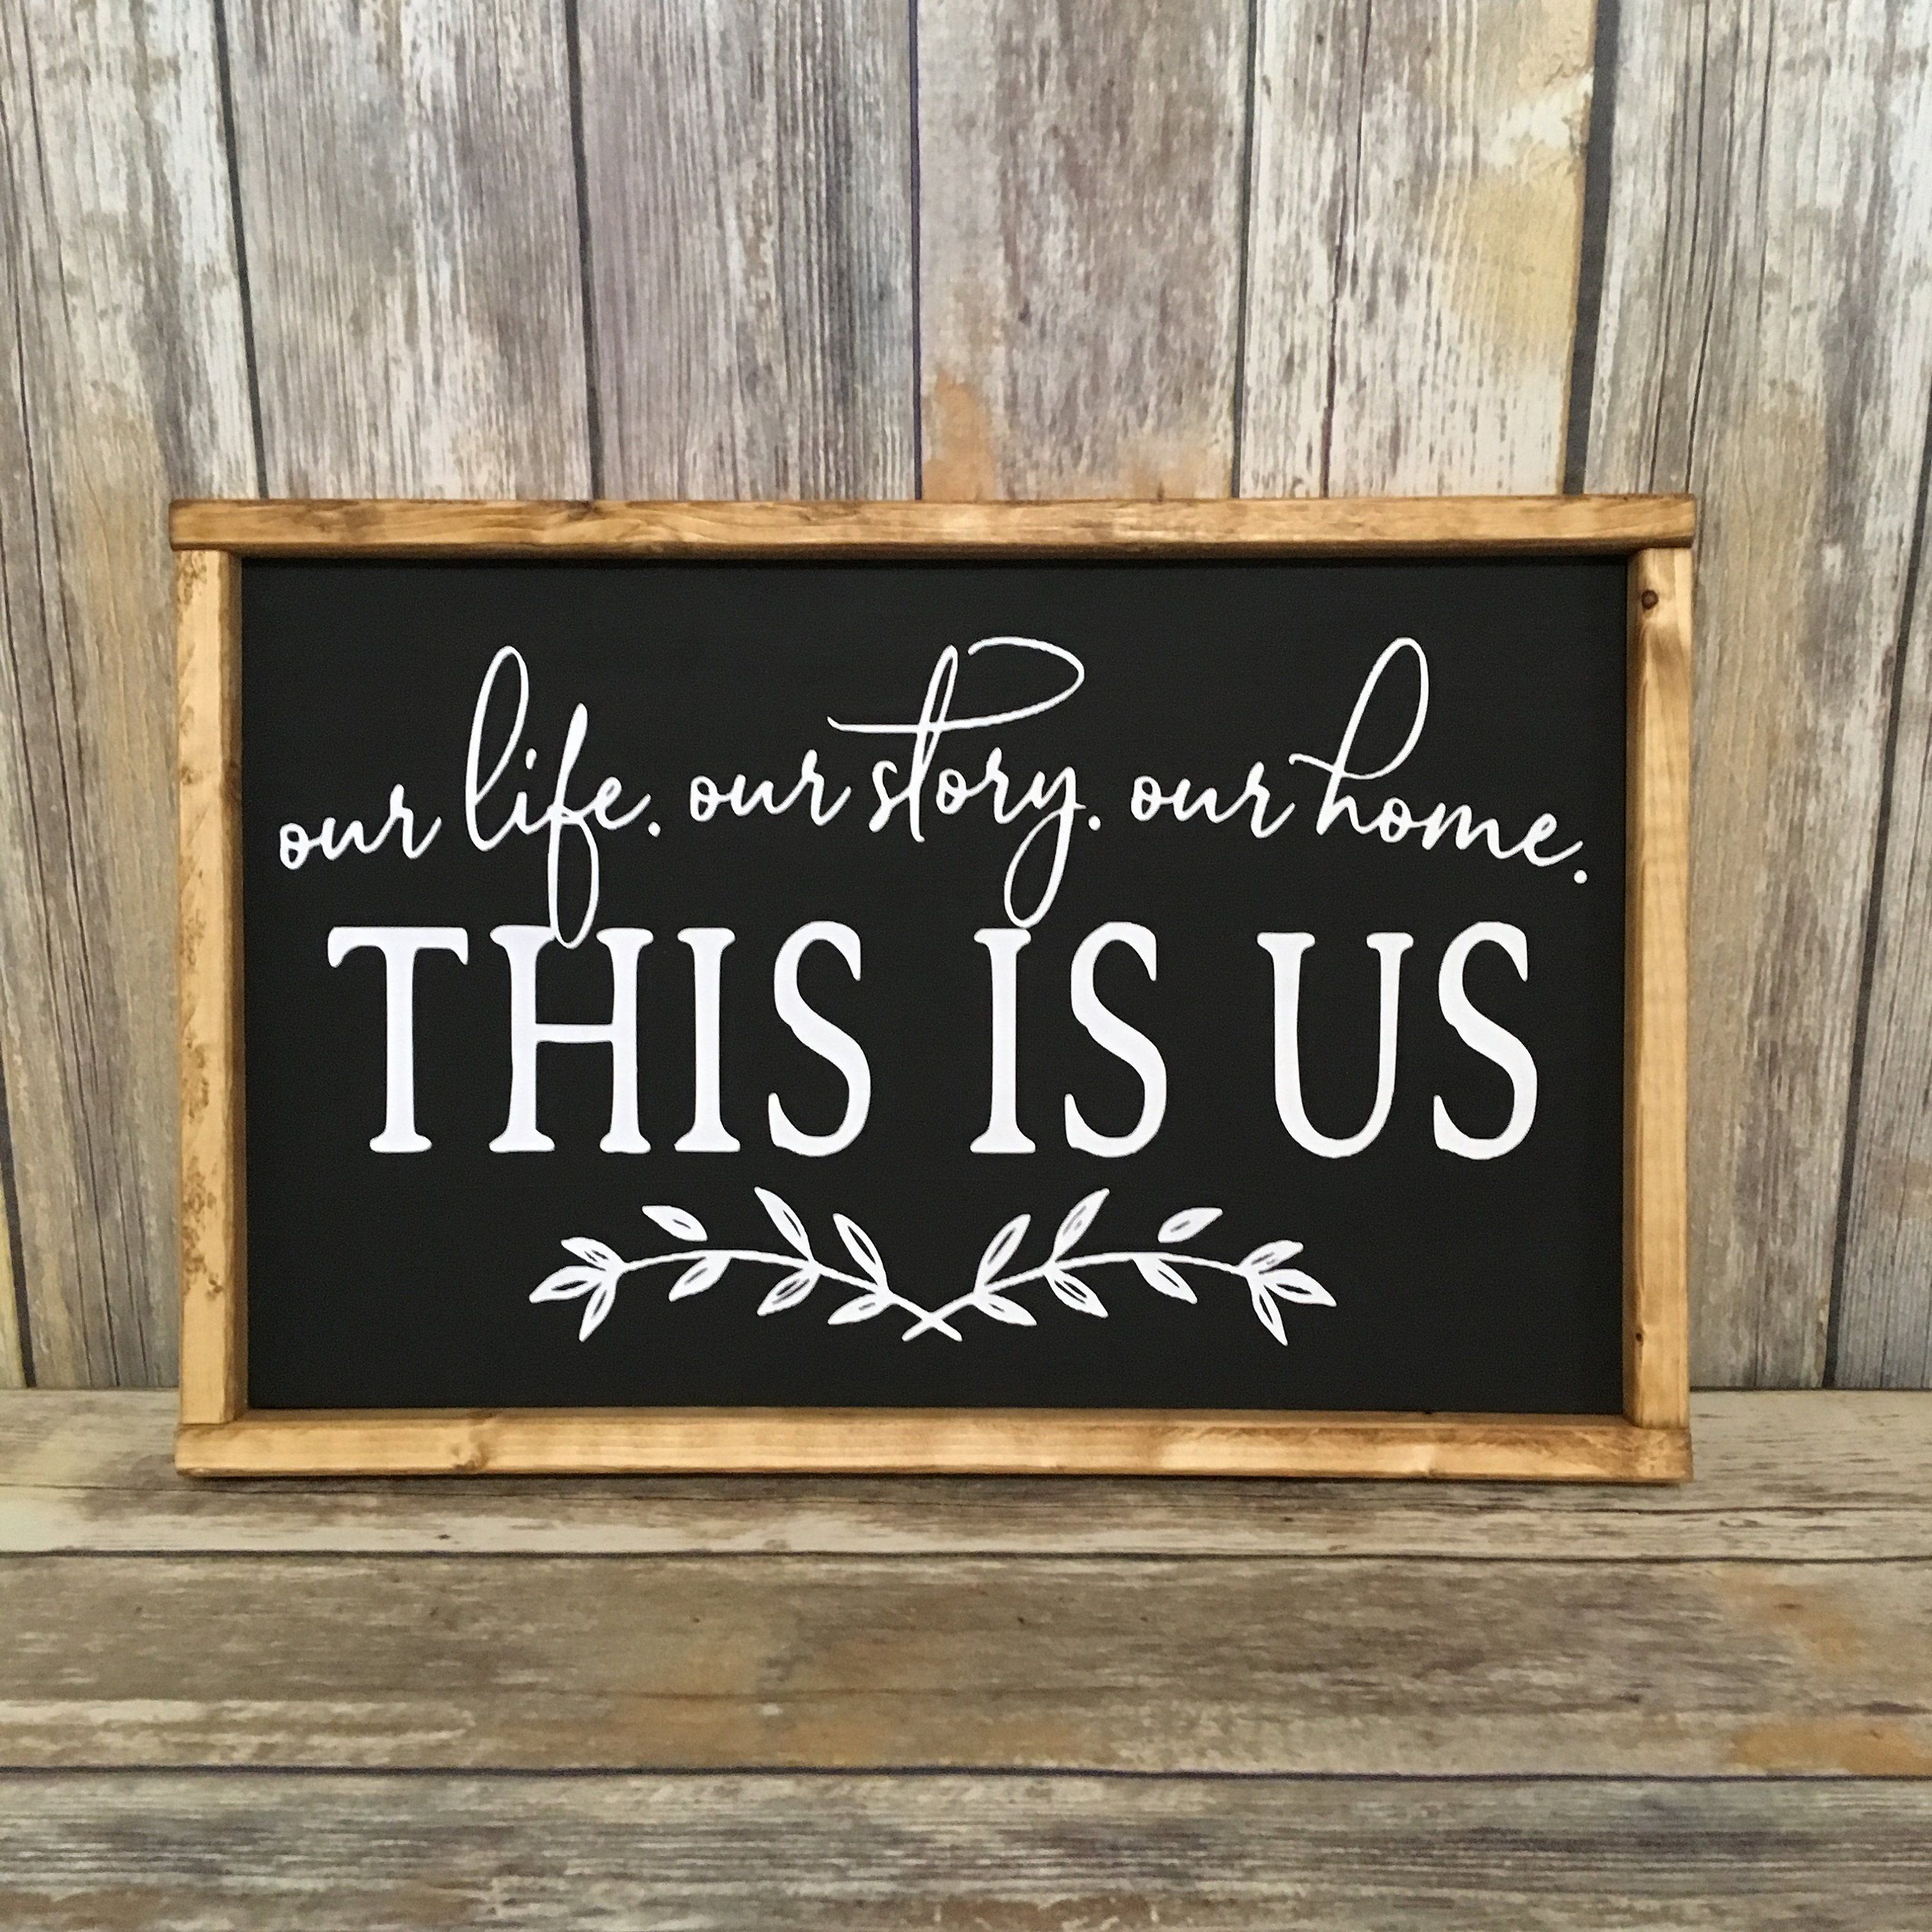 This Is Us. Our Life. Our Story. Our Home, Wood Sign, This Is Us, Primitive Family Sign, This Is ...